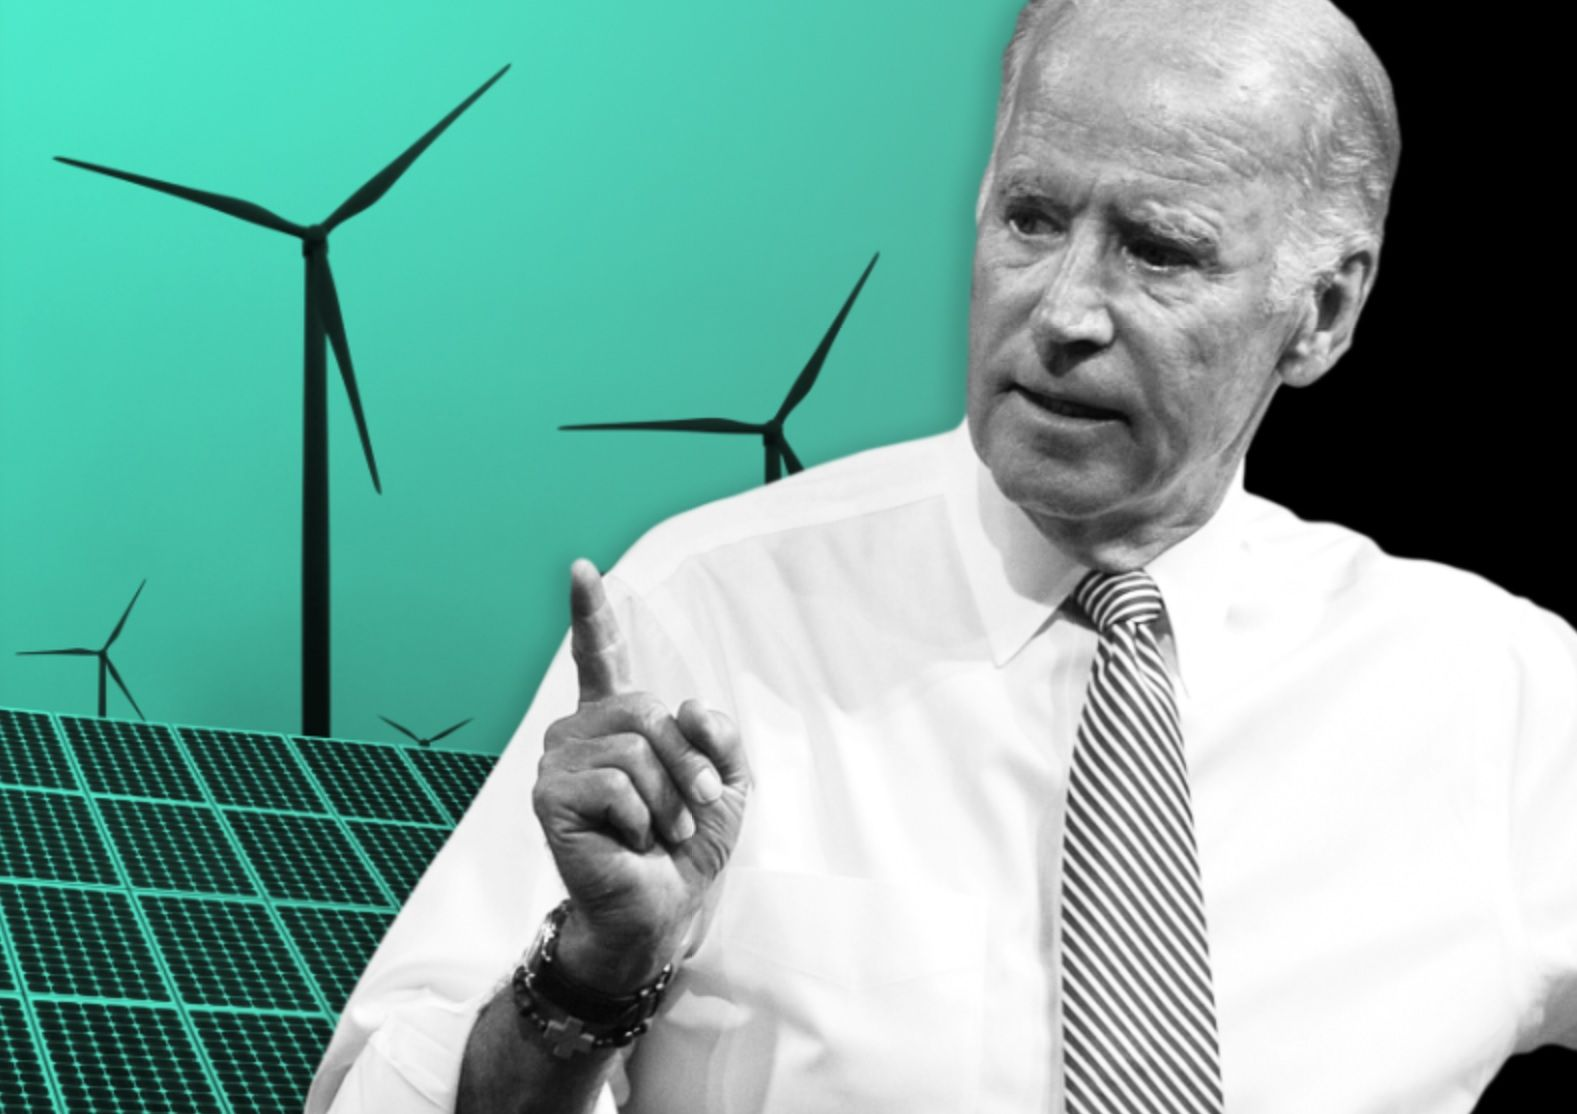 President Joe Biden campaigned on converting the nation to clean electricity. That could happen through a budget reconciliation deal, which only needs a slim majority in the Senate.